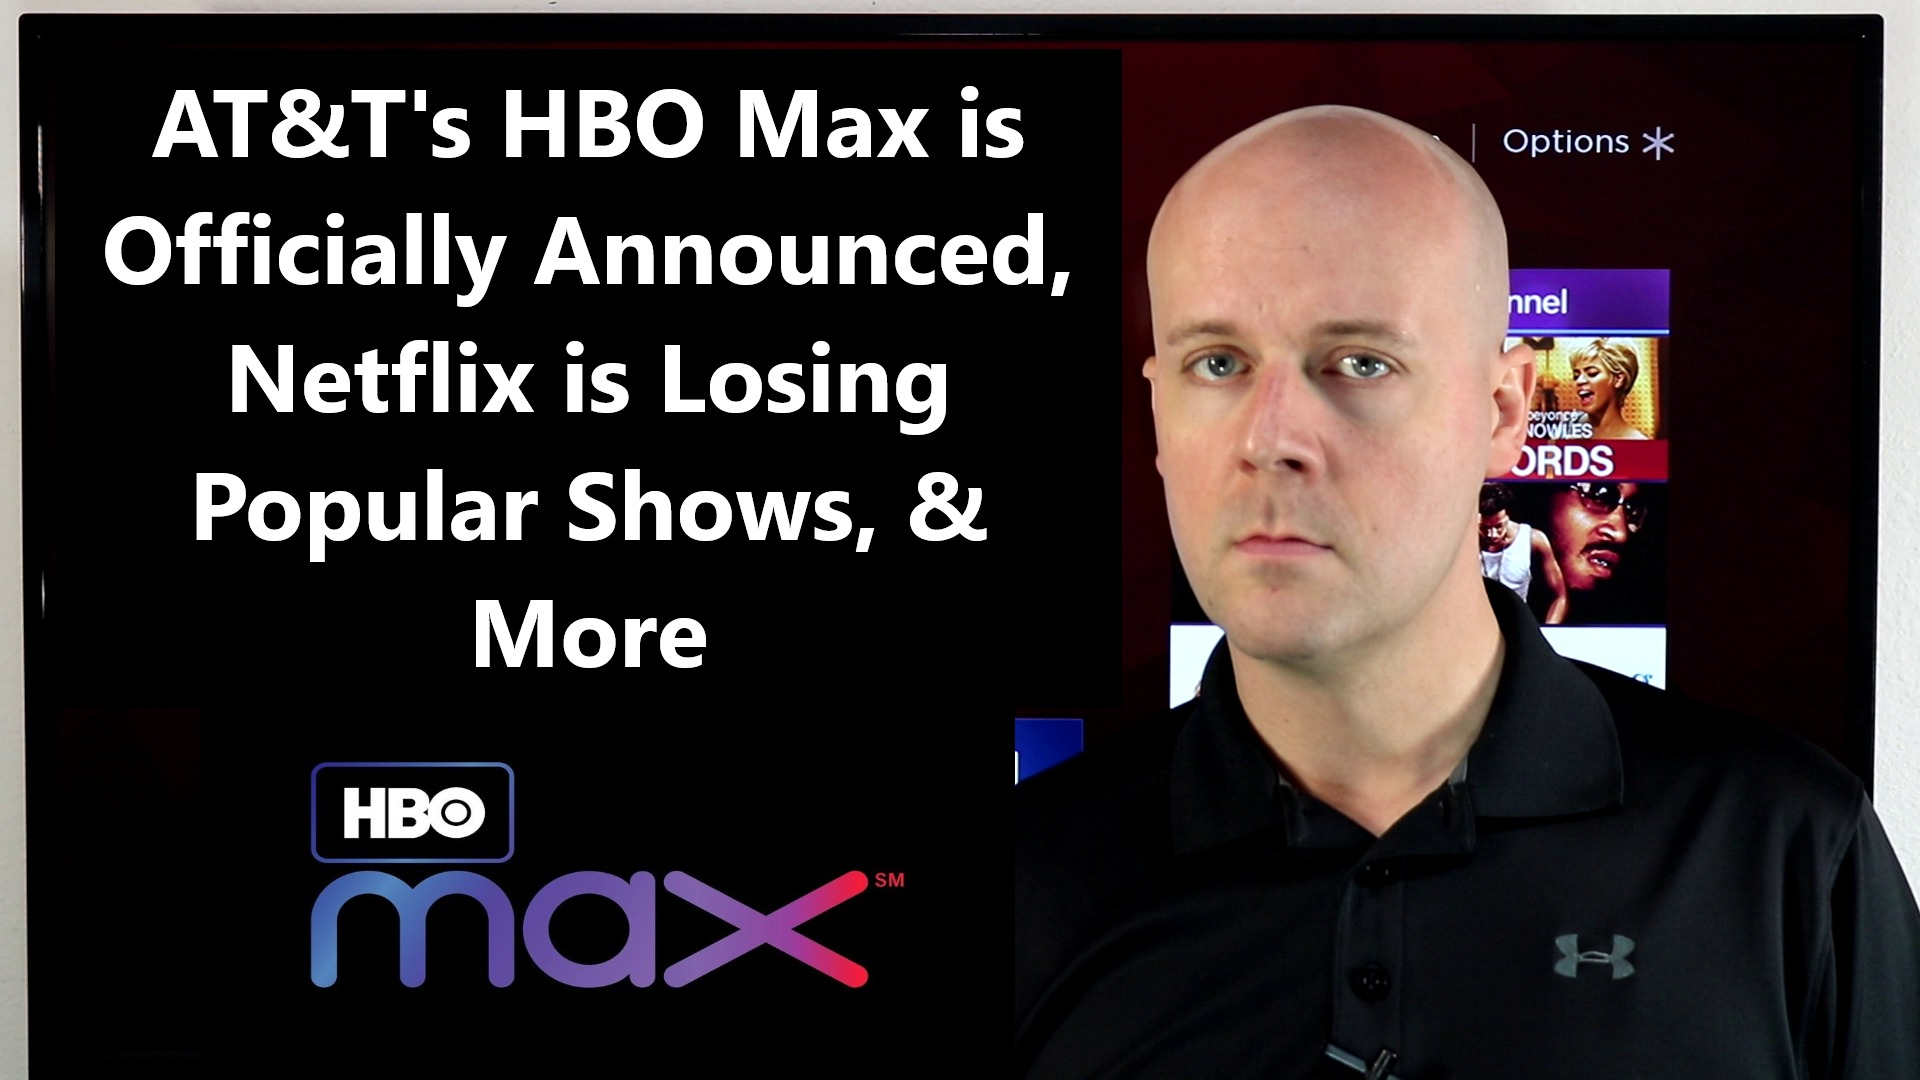 Friends reunited as WarnerMedia names HBO Max as DTC brand